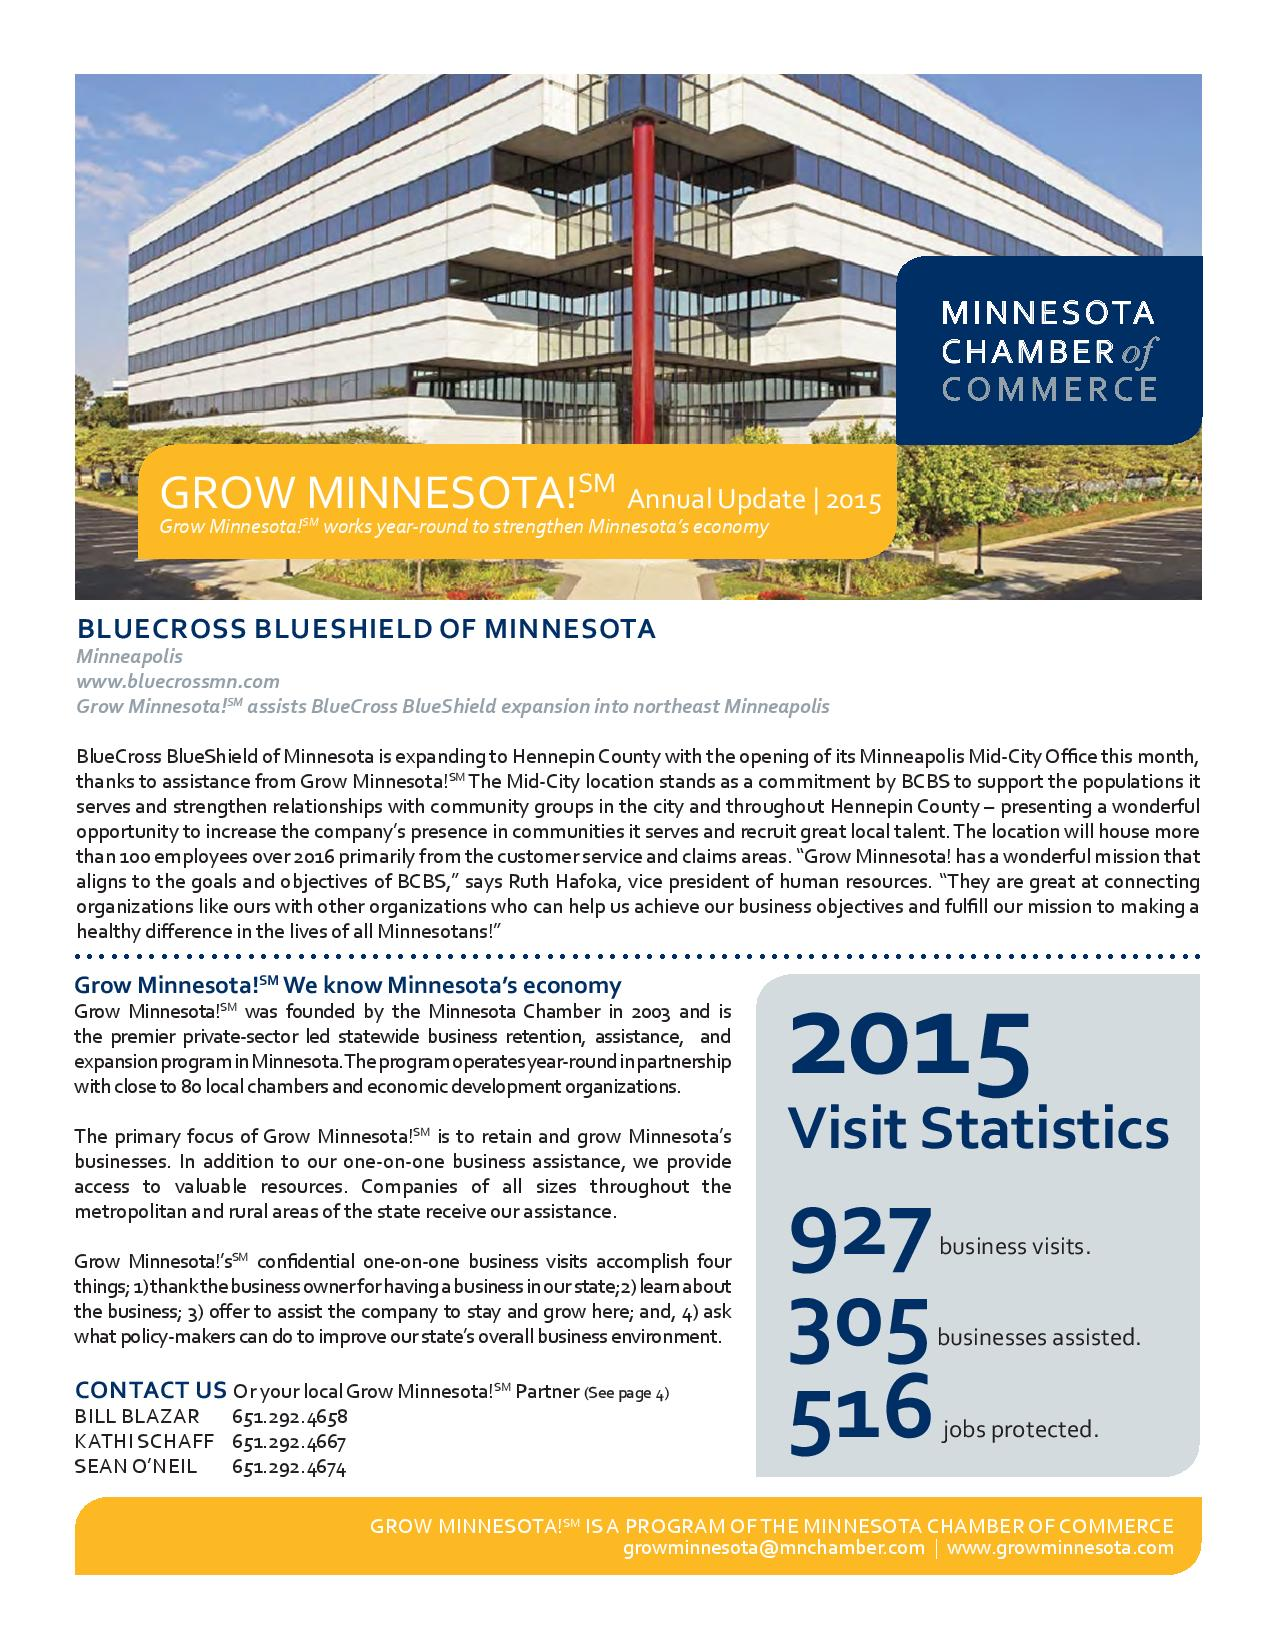 west metro business insider twinwest chamber of commerce mn 2015 grow minnesota annual report